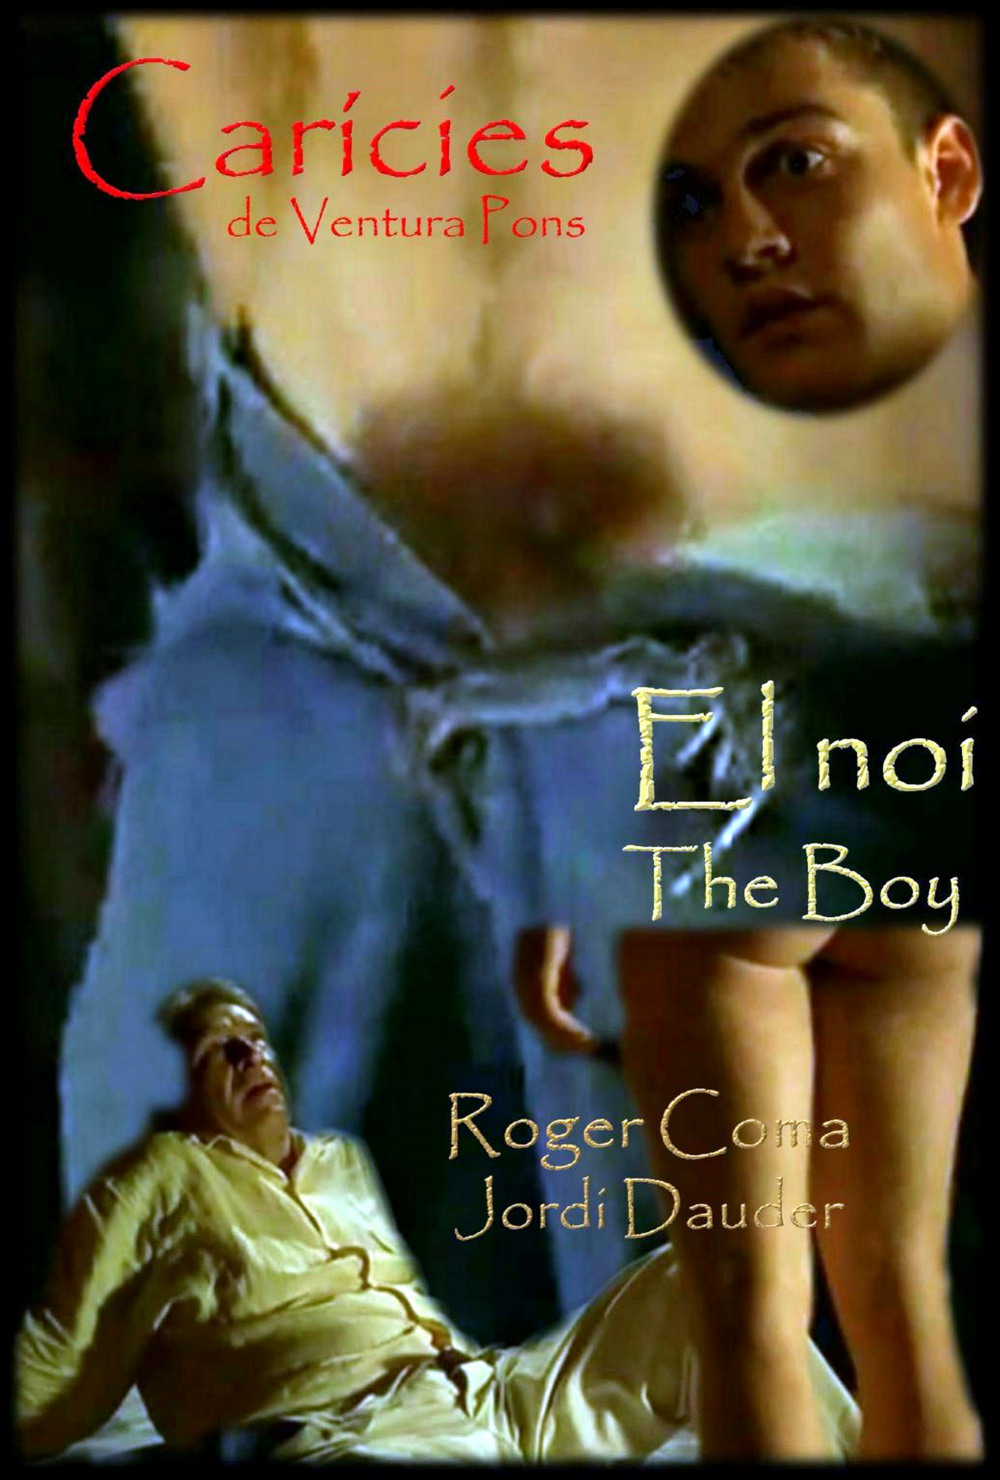 El noi (1998) The Boy